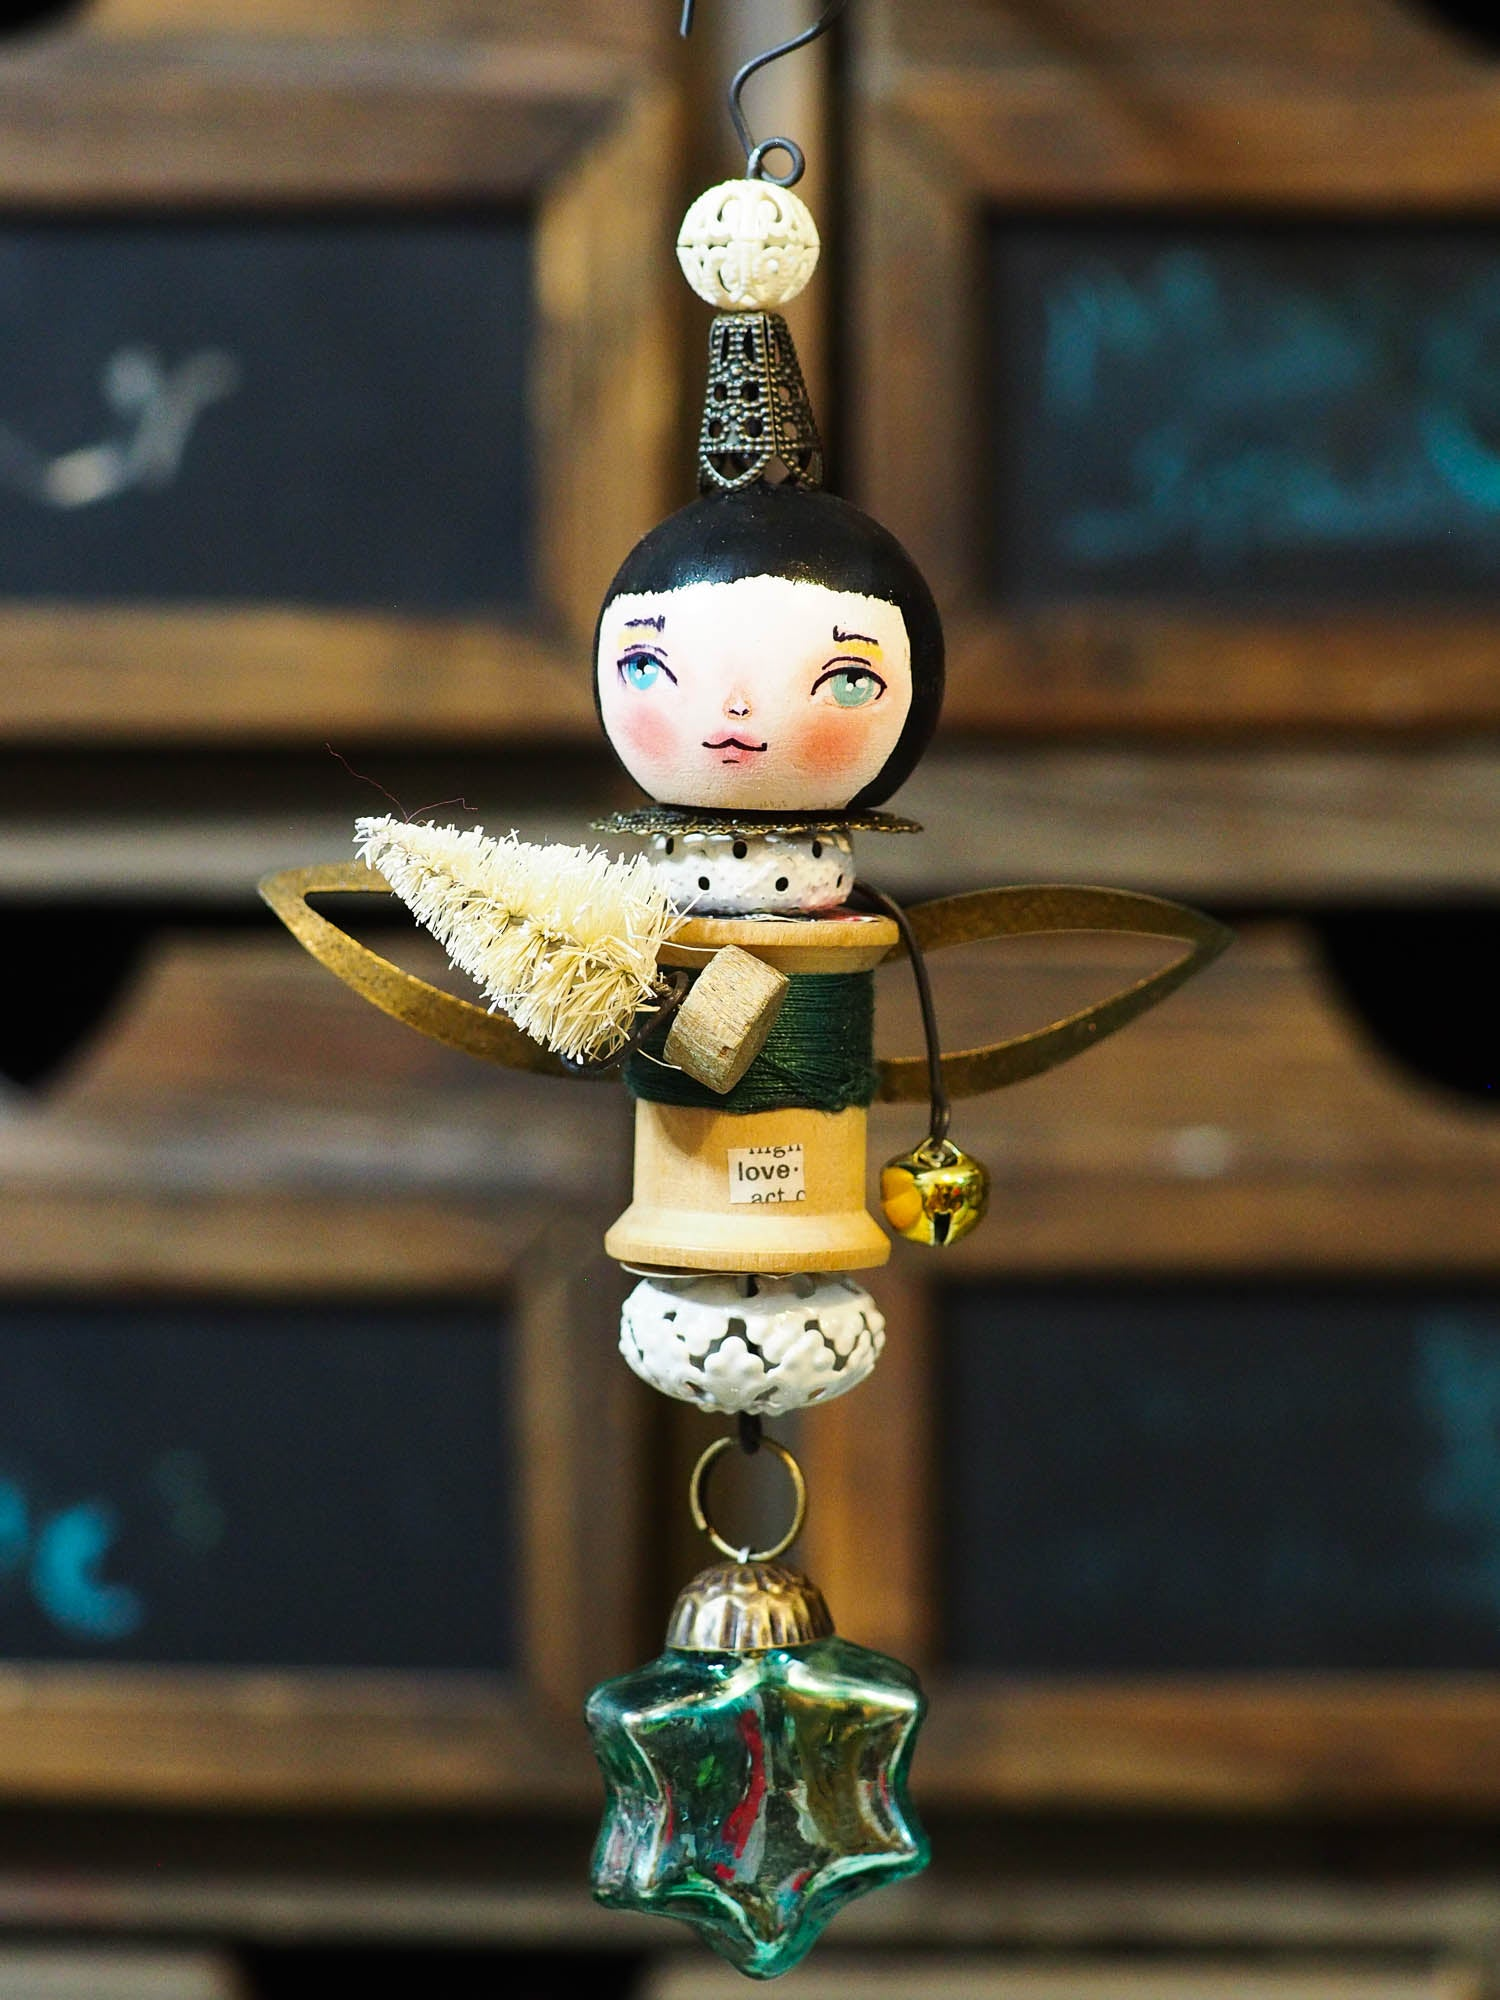 ANGEL No. 4 - An original handmade Christmas tree ornament by Danita